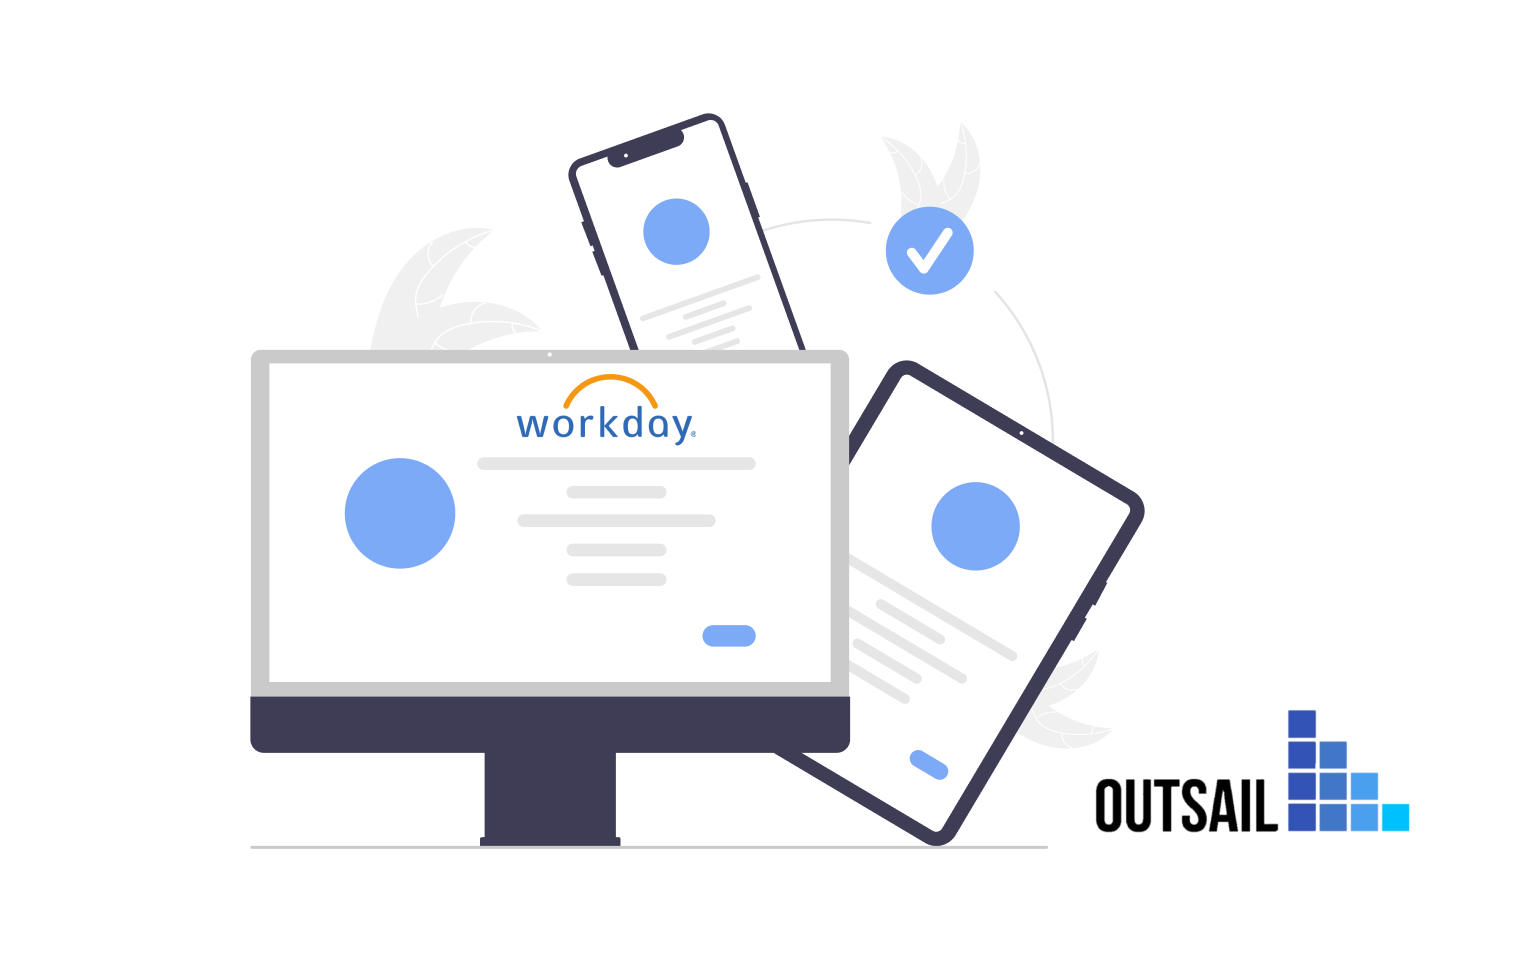 Workday Reviews - Pricing, Pros/Cons, User Reviews